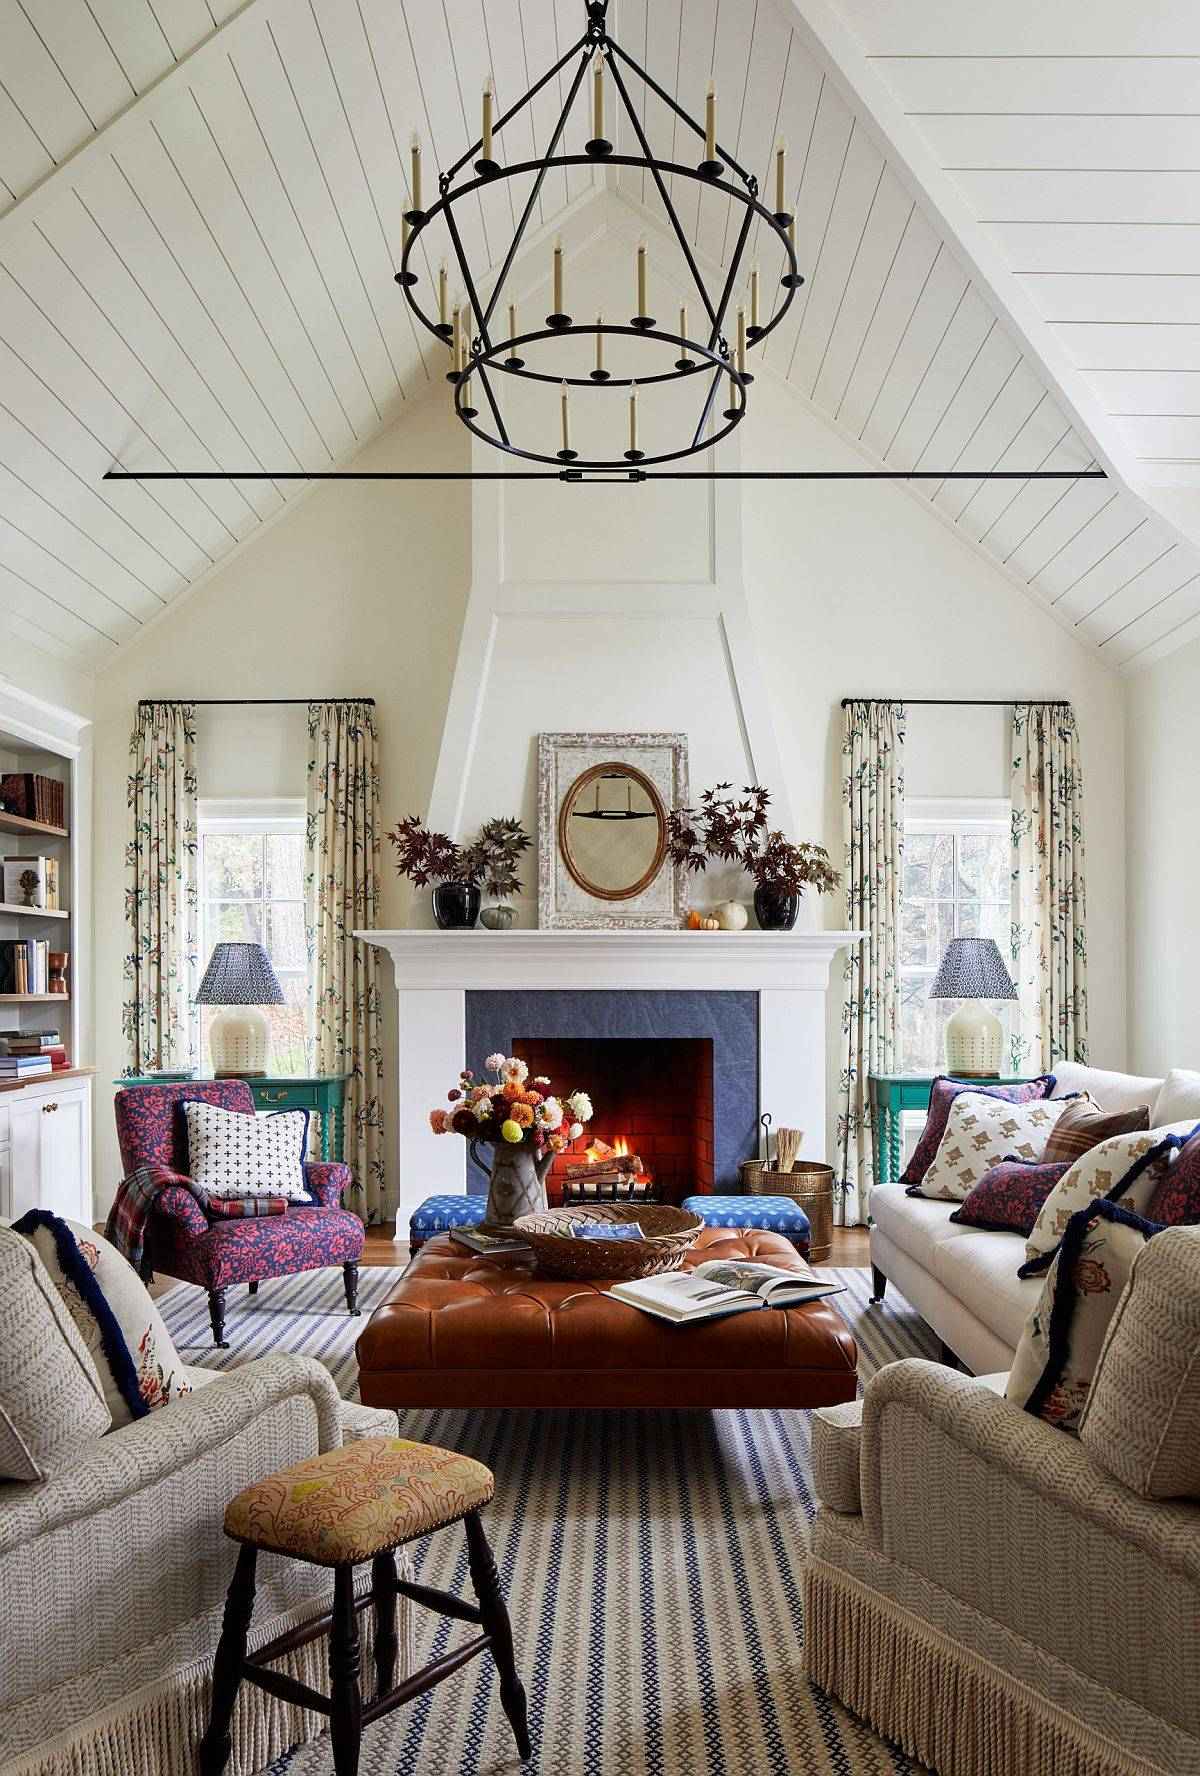 Adding-a-bit-of-color-and-cheerful-zest-to-the-double-height-living-space-in-white-23380